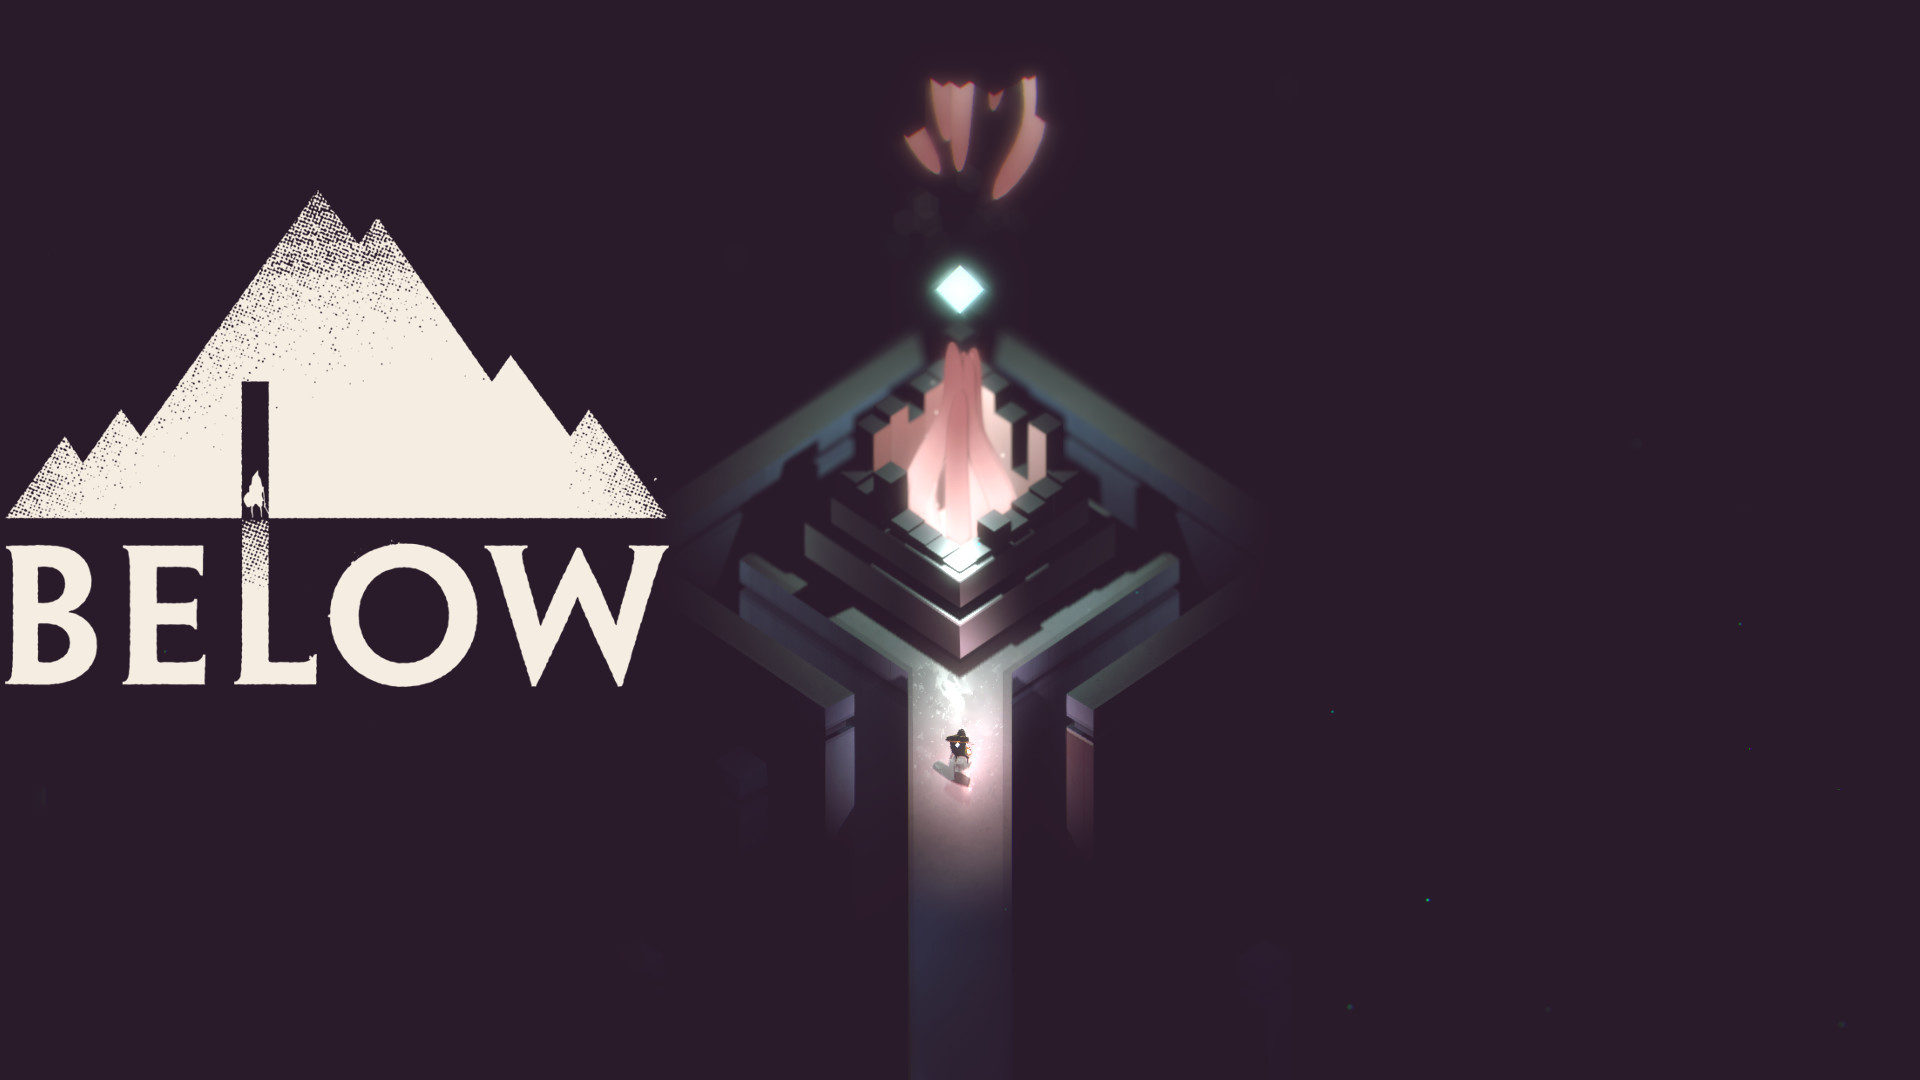 Can Capybara Games Bring 'Below' Back Into the Spotlight?